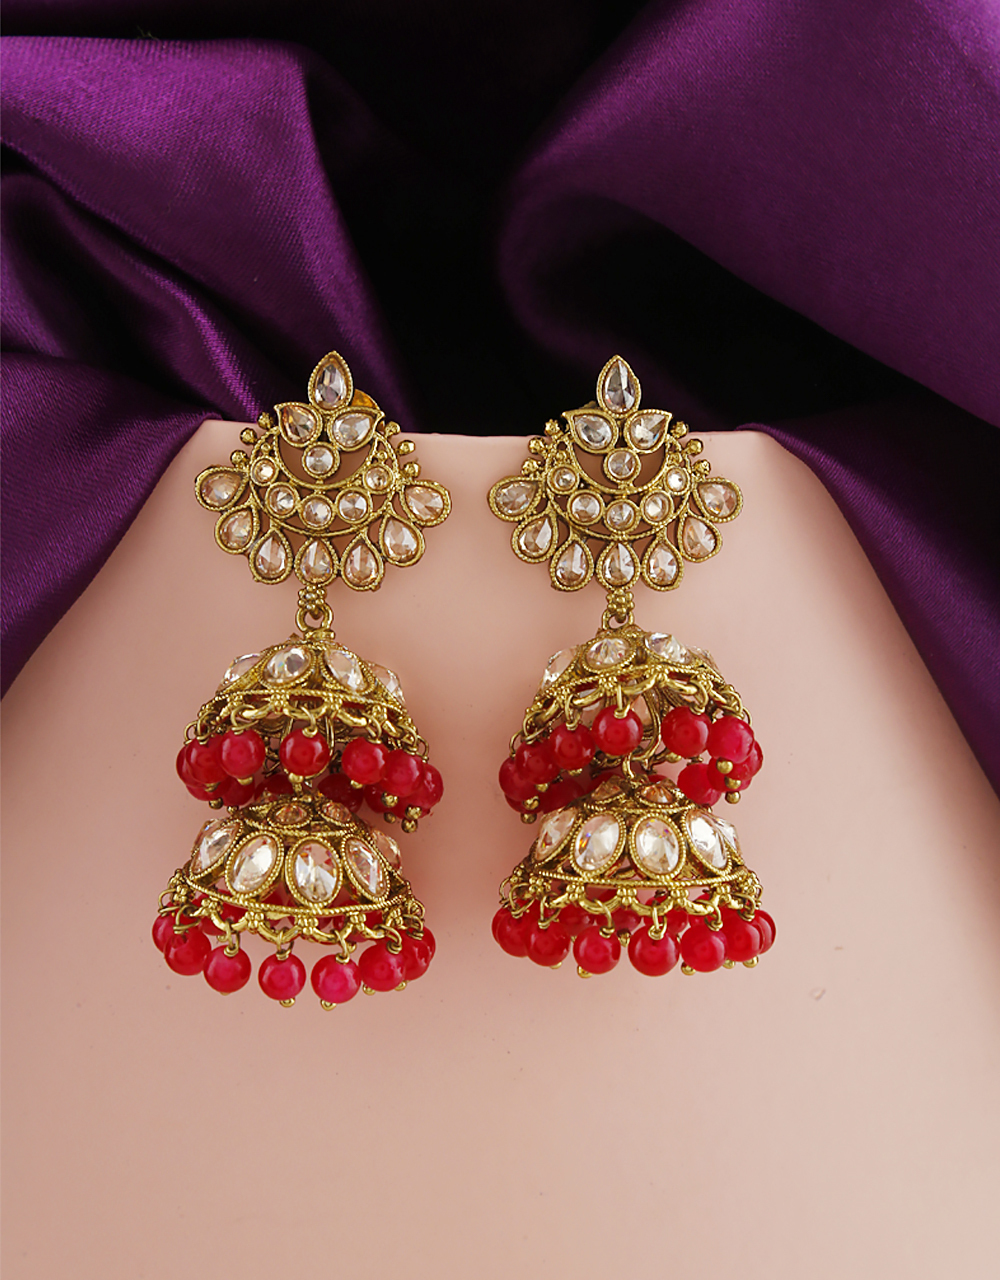 Red Colour Styled With Pearl Beads Traditional Earrings From Anuradha Art Jewellery